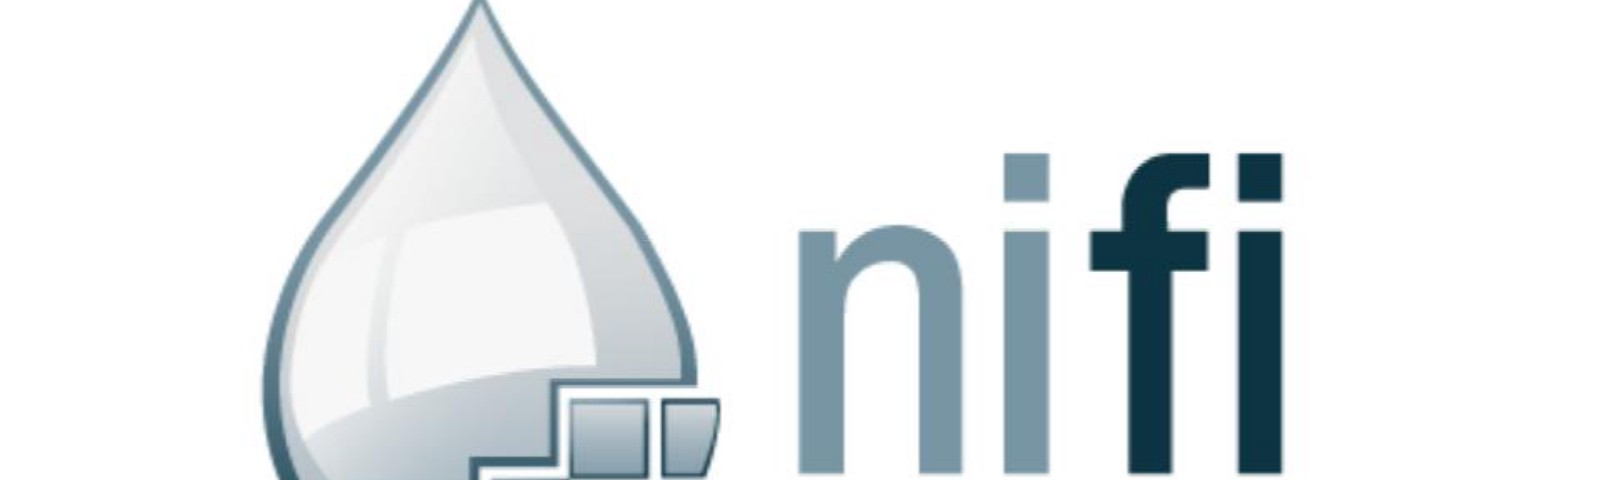 Apache NiFi And Kafka Docker Example - Towards Data Science